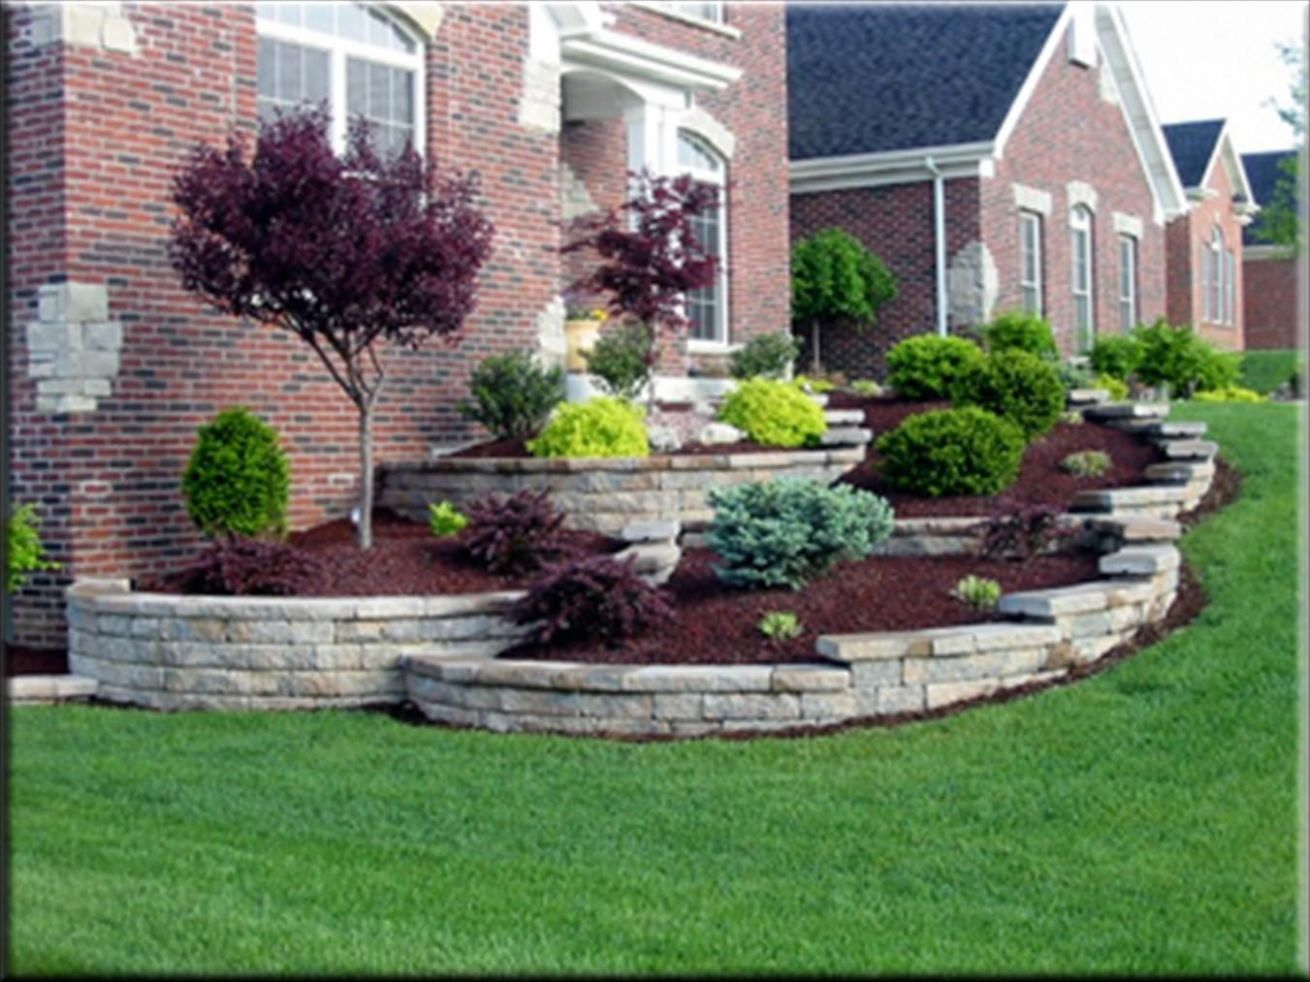 11 Quick Ways to Add Value To Your Home | Landscaping around house ...